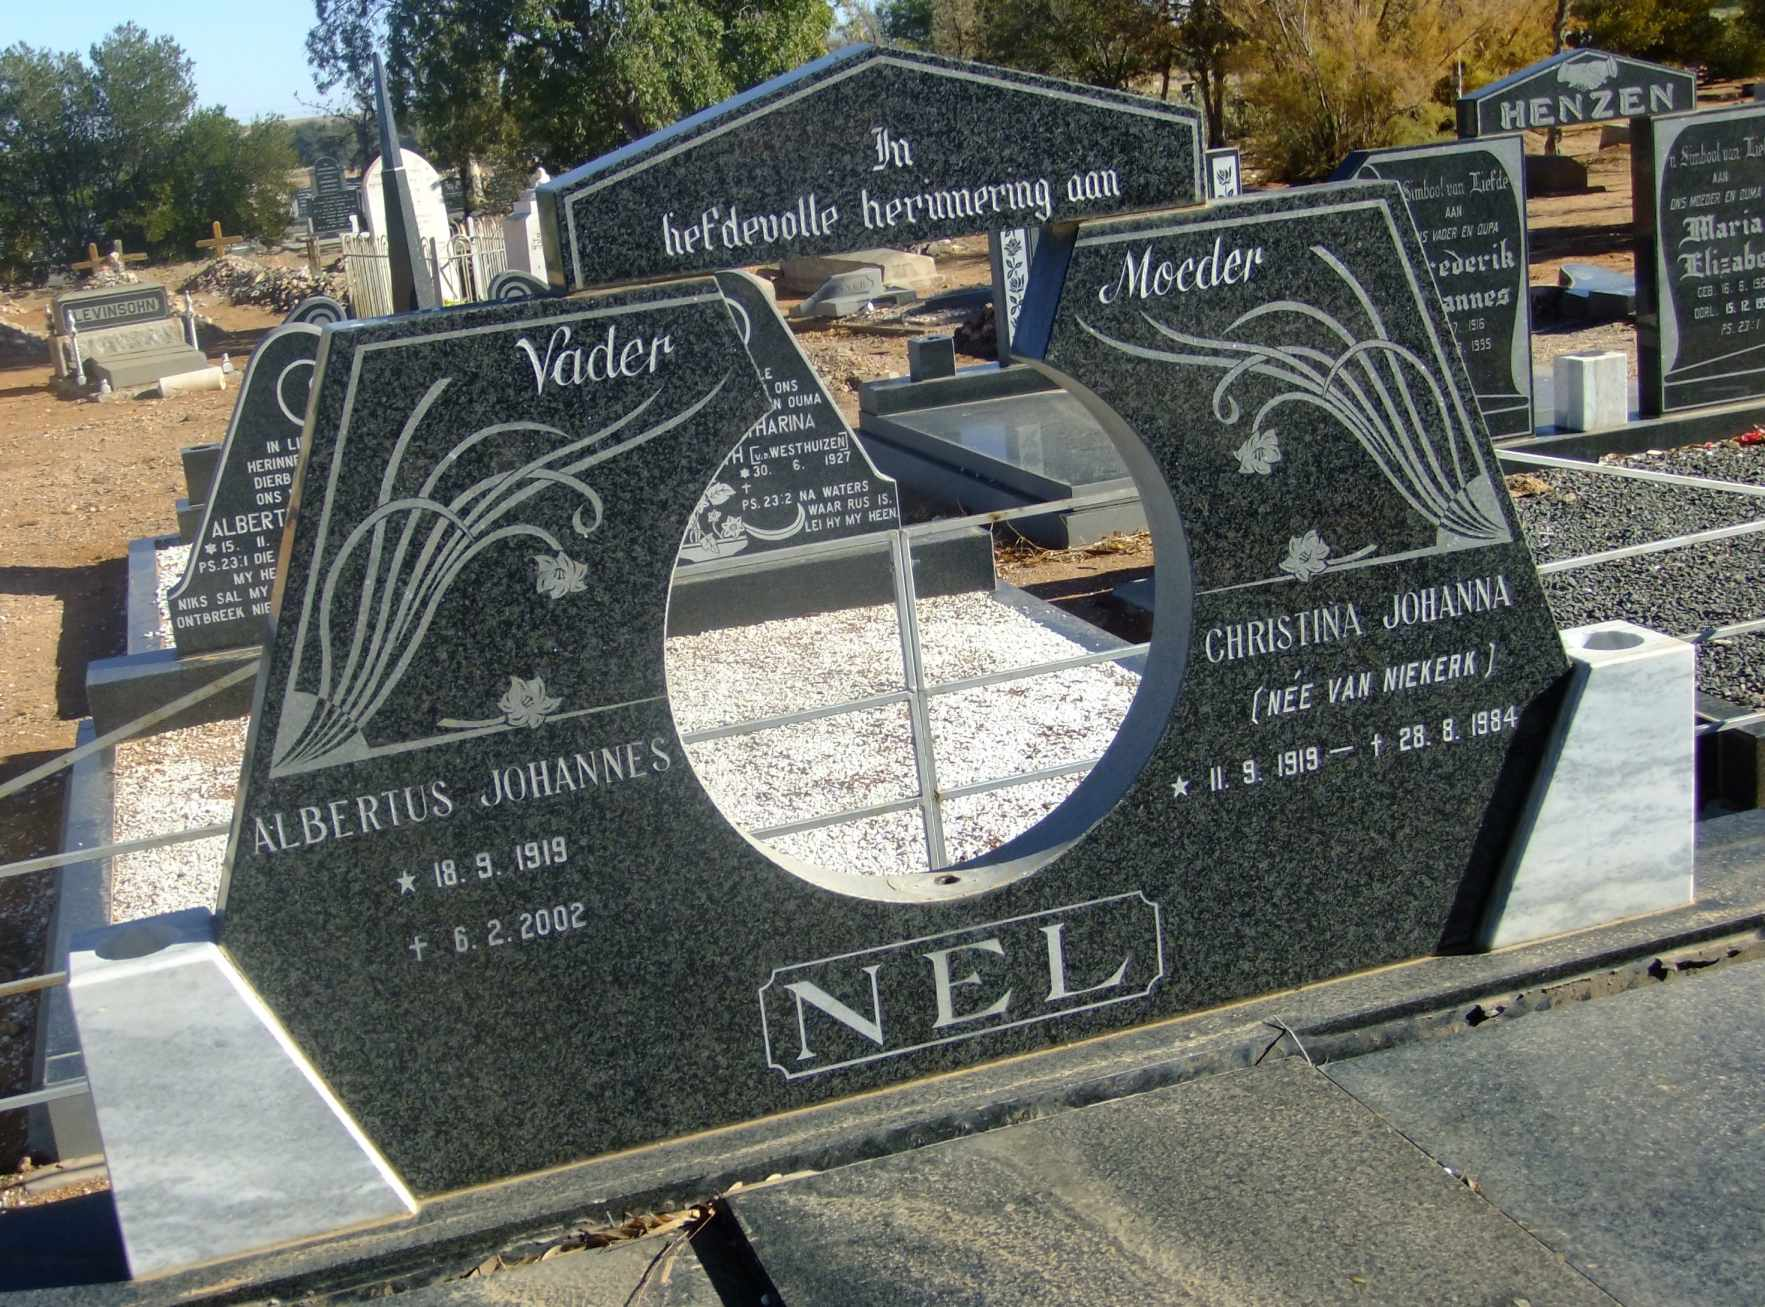 Nel, Albertus Johannes born 18 September 1919 died 06 February 2002 and Christina Johanna nee Van Niekerk born 11 November 1919 dued 28 August 1984